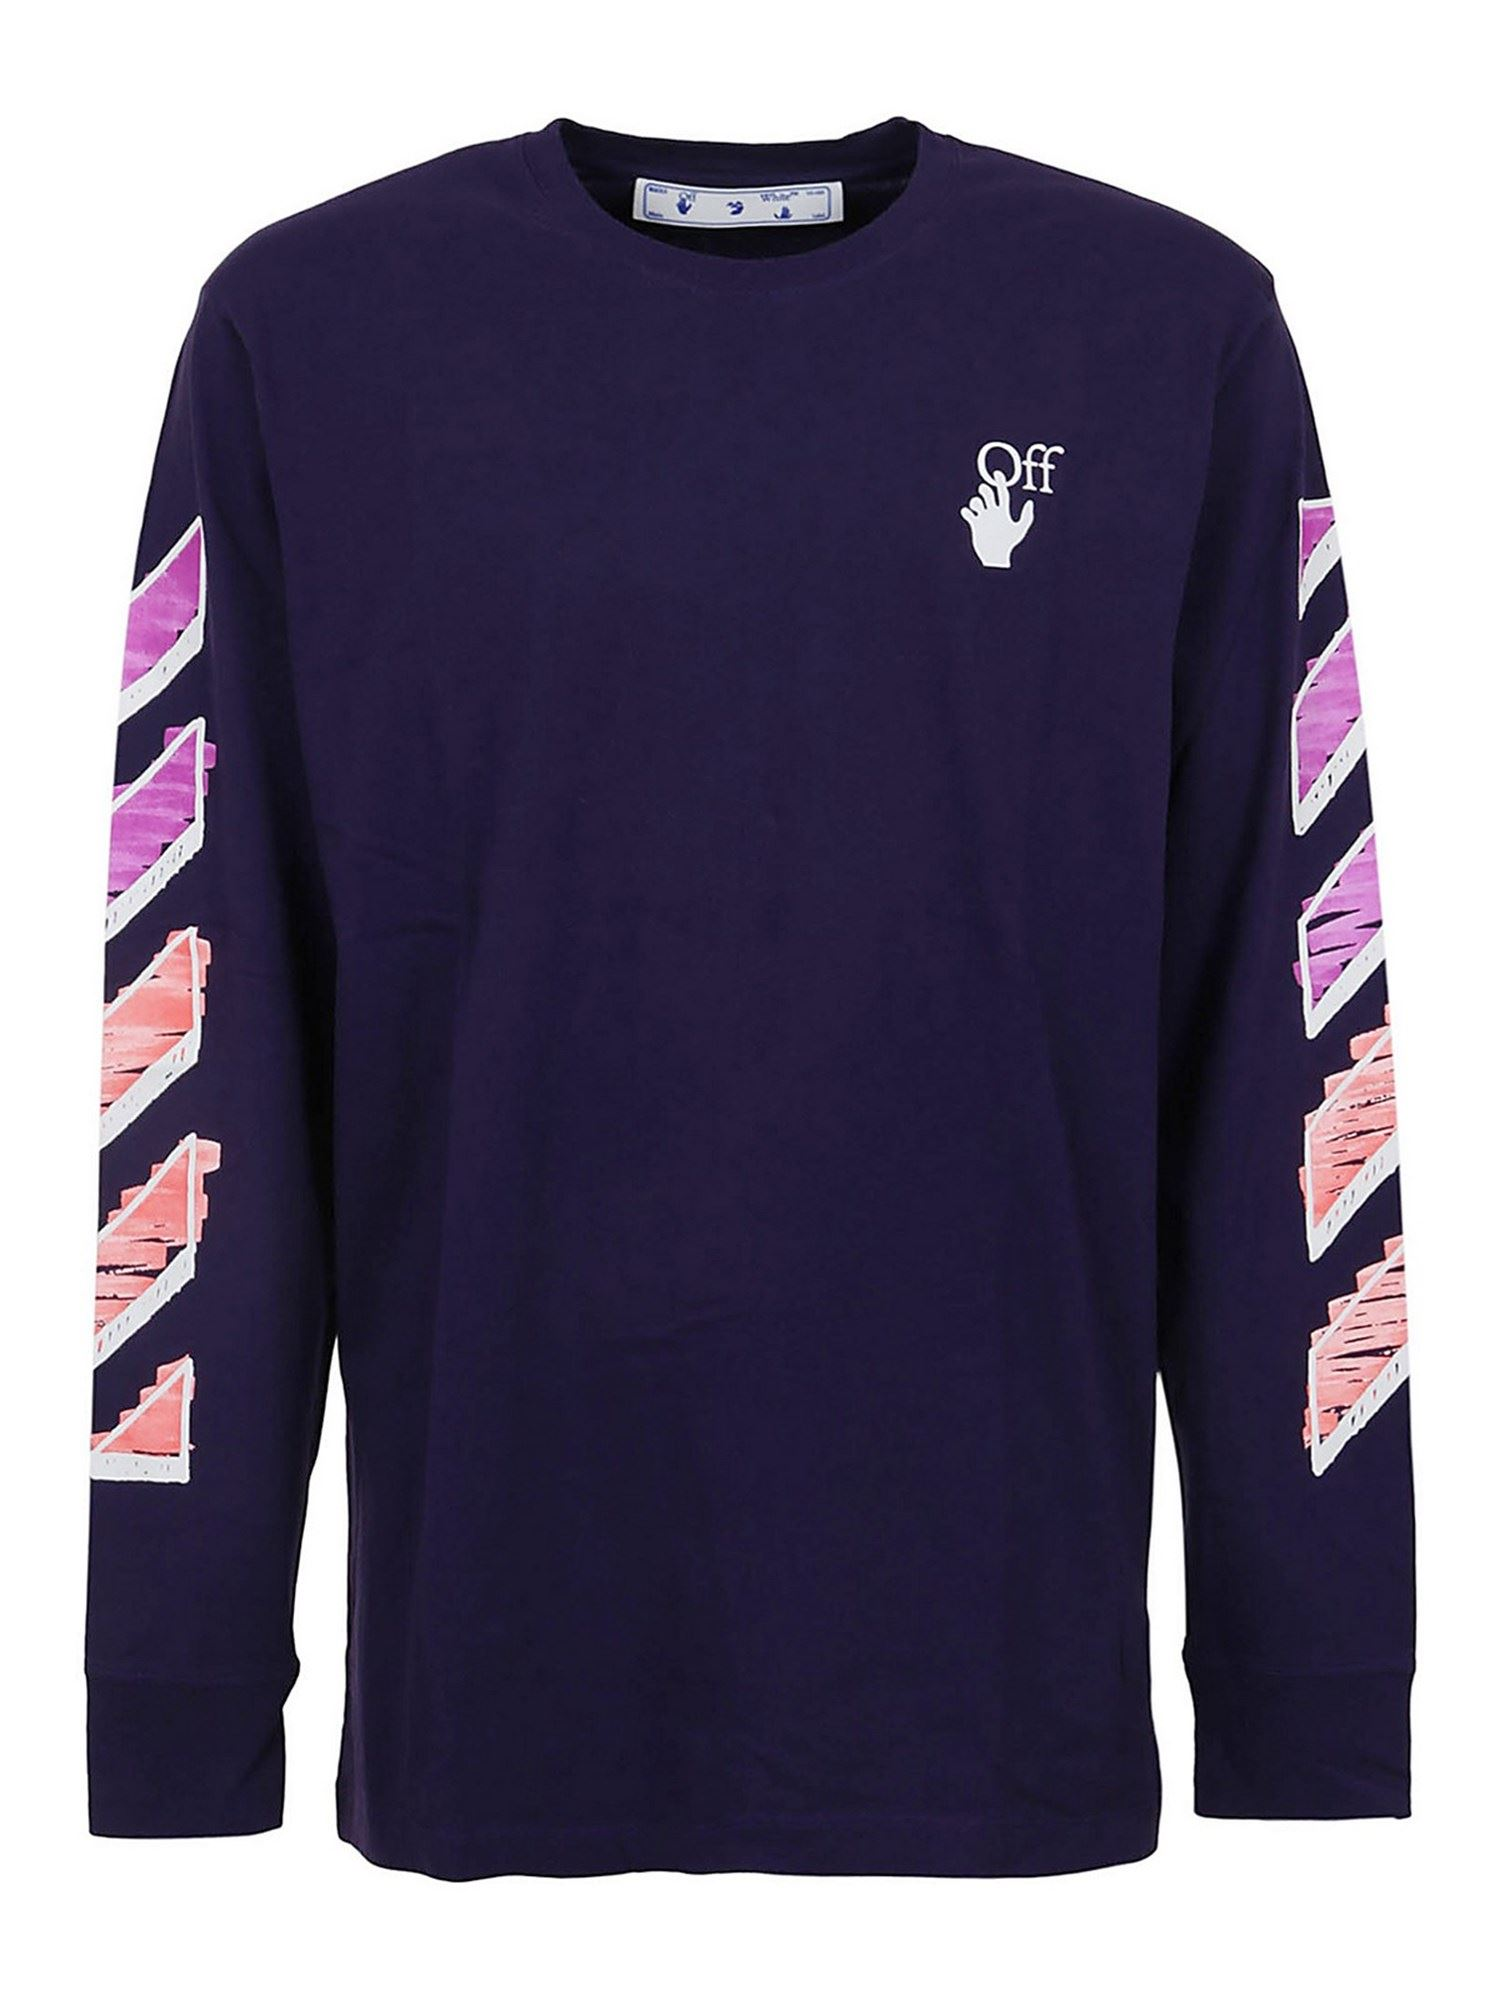 Off-White CREWNECK LONG-SLEEVE T-SHIRT IN PURPLE